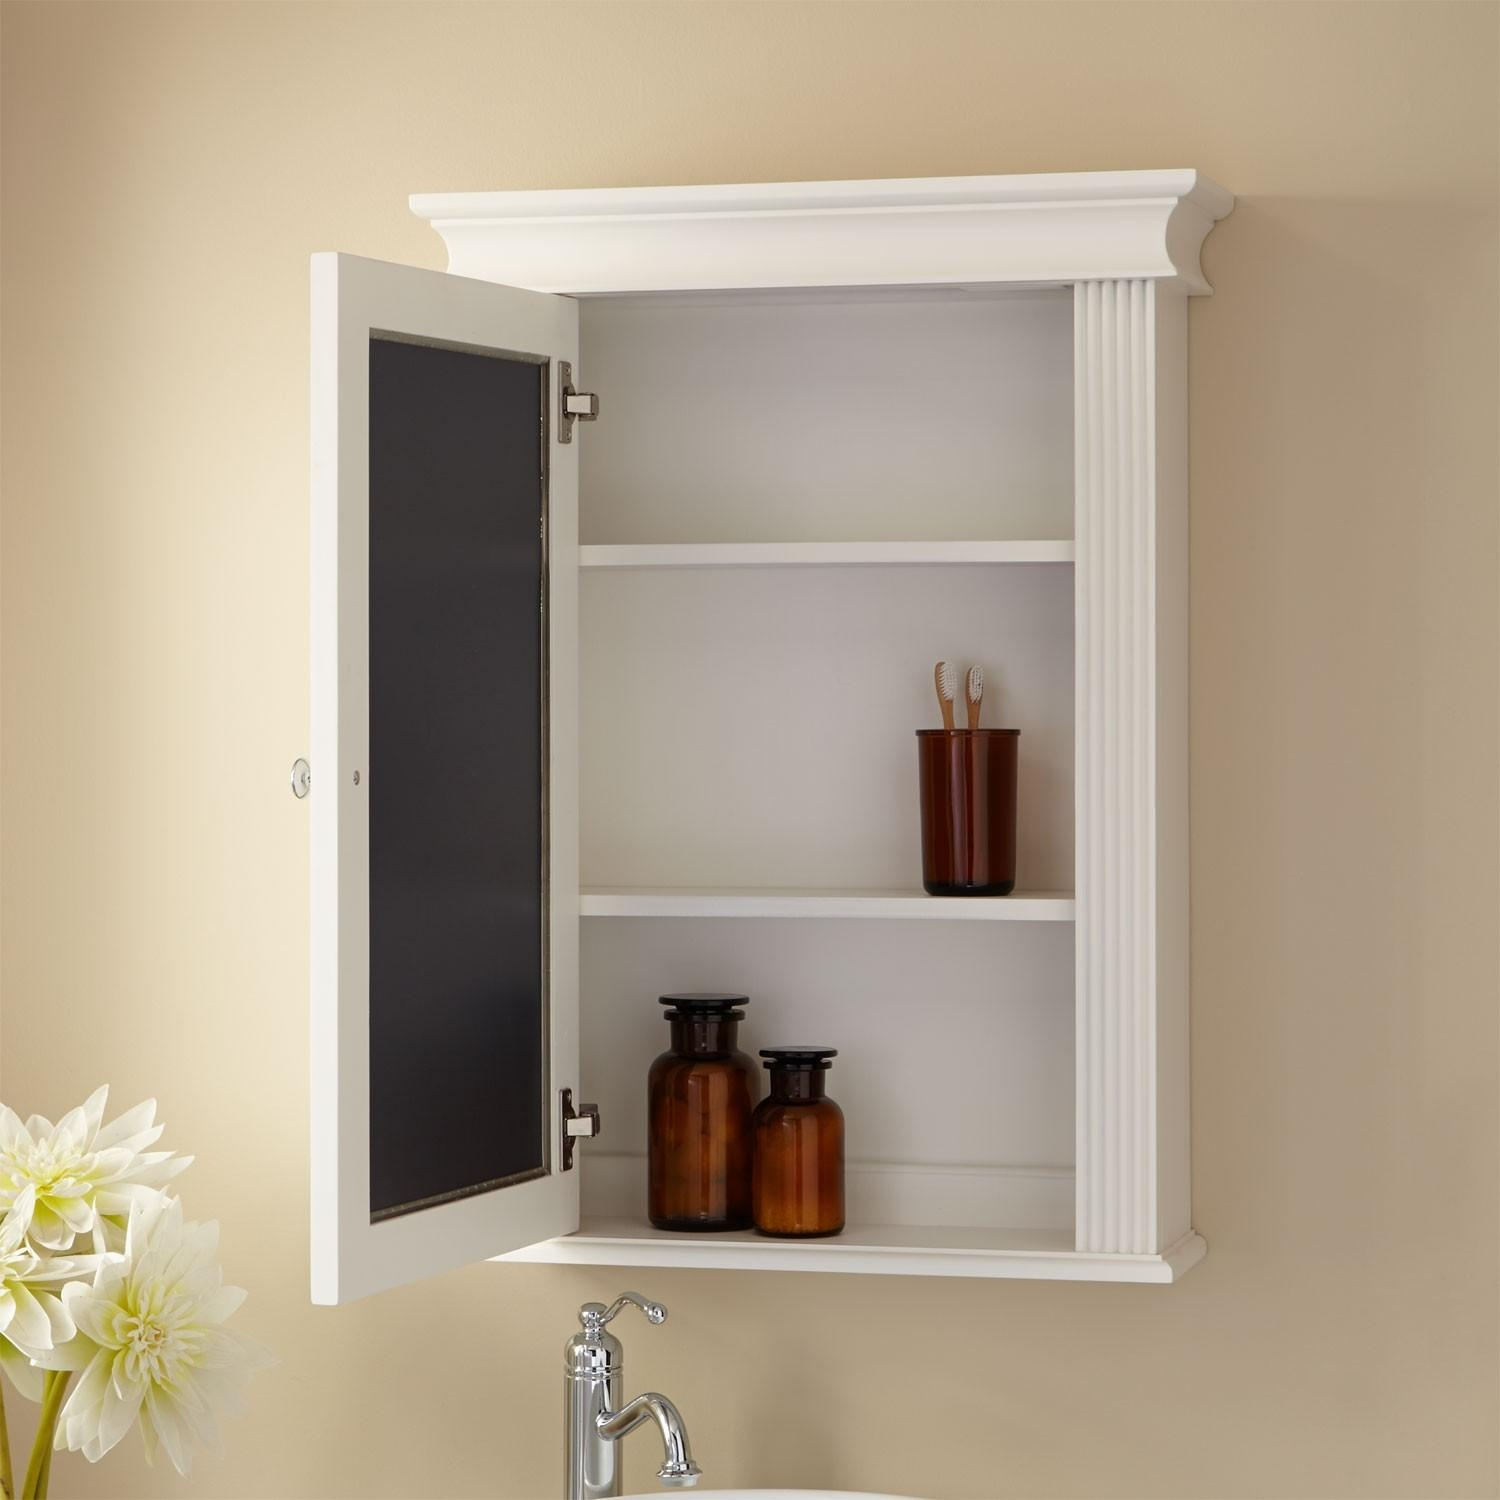 Bathrooms Design : Recessed Medicine Cabinets With Mirrors For Throughout Bathroom Cabinets Mirrors (Image 11 of 20)